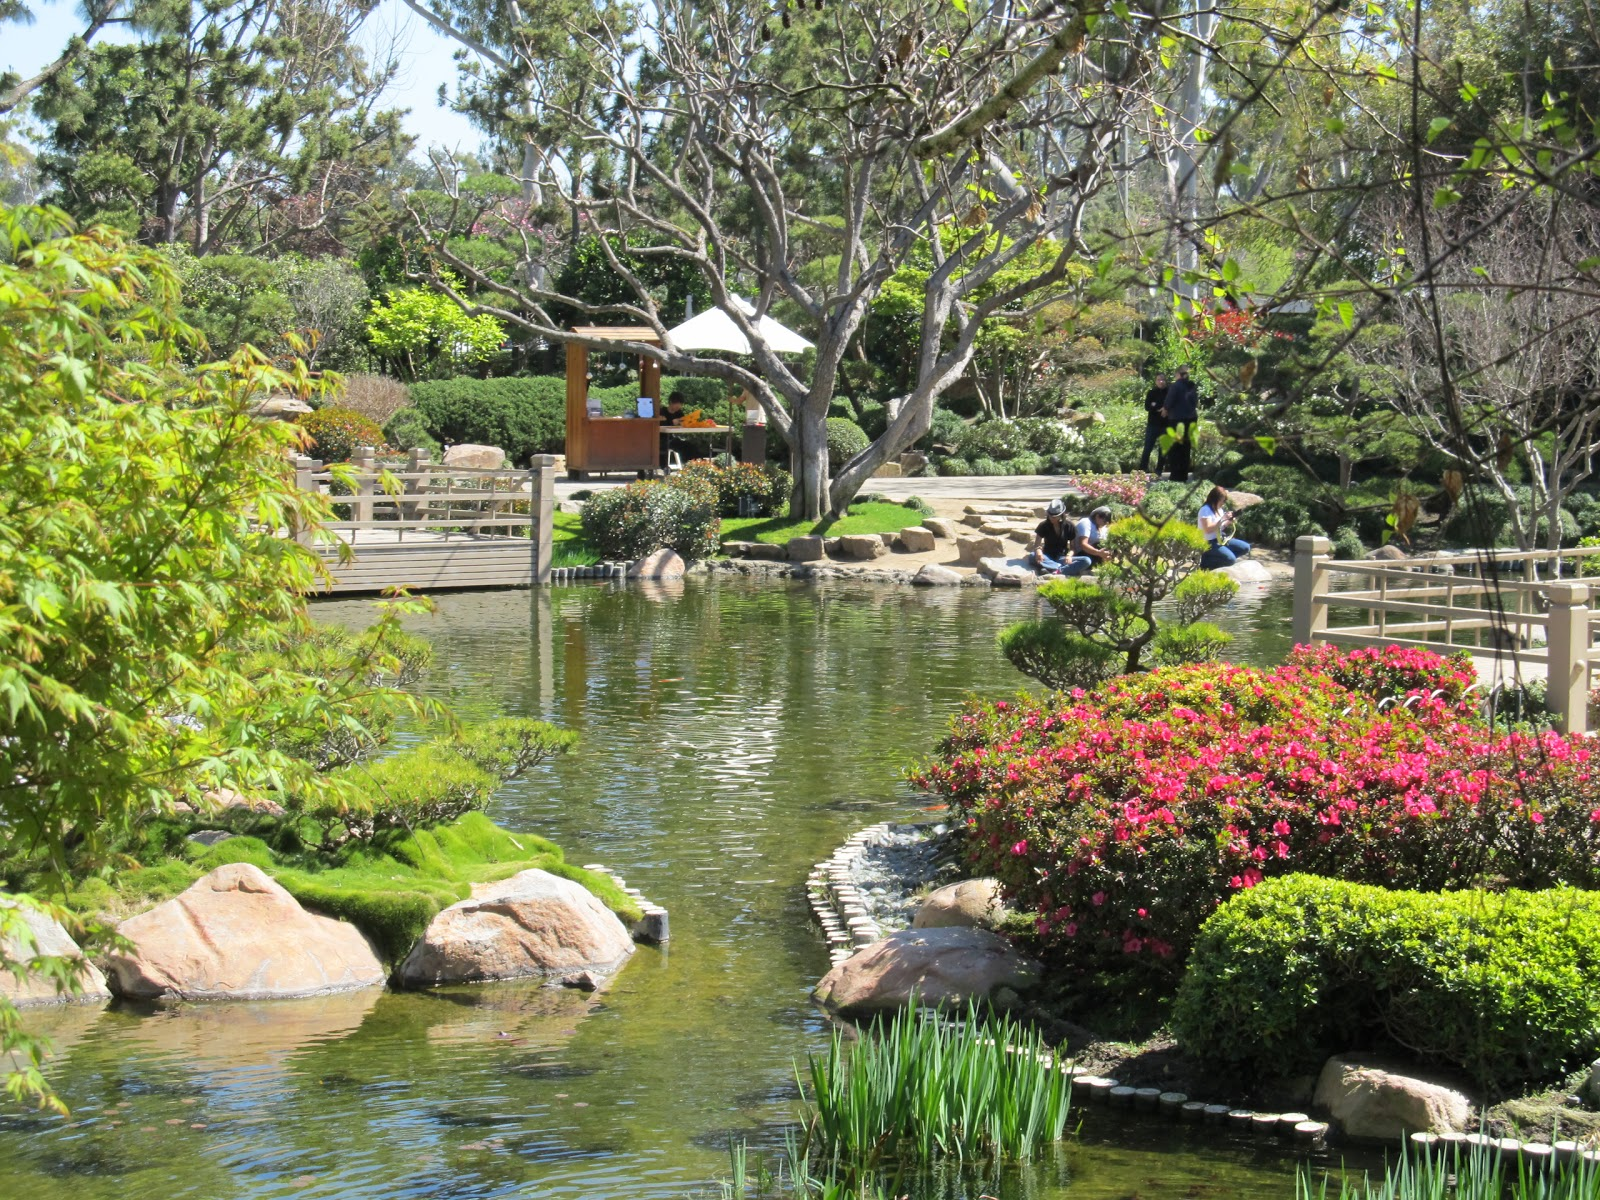 Earl burns miller japanese garden at cal state long beach - Japanese garden ...